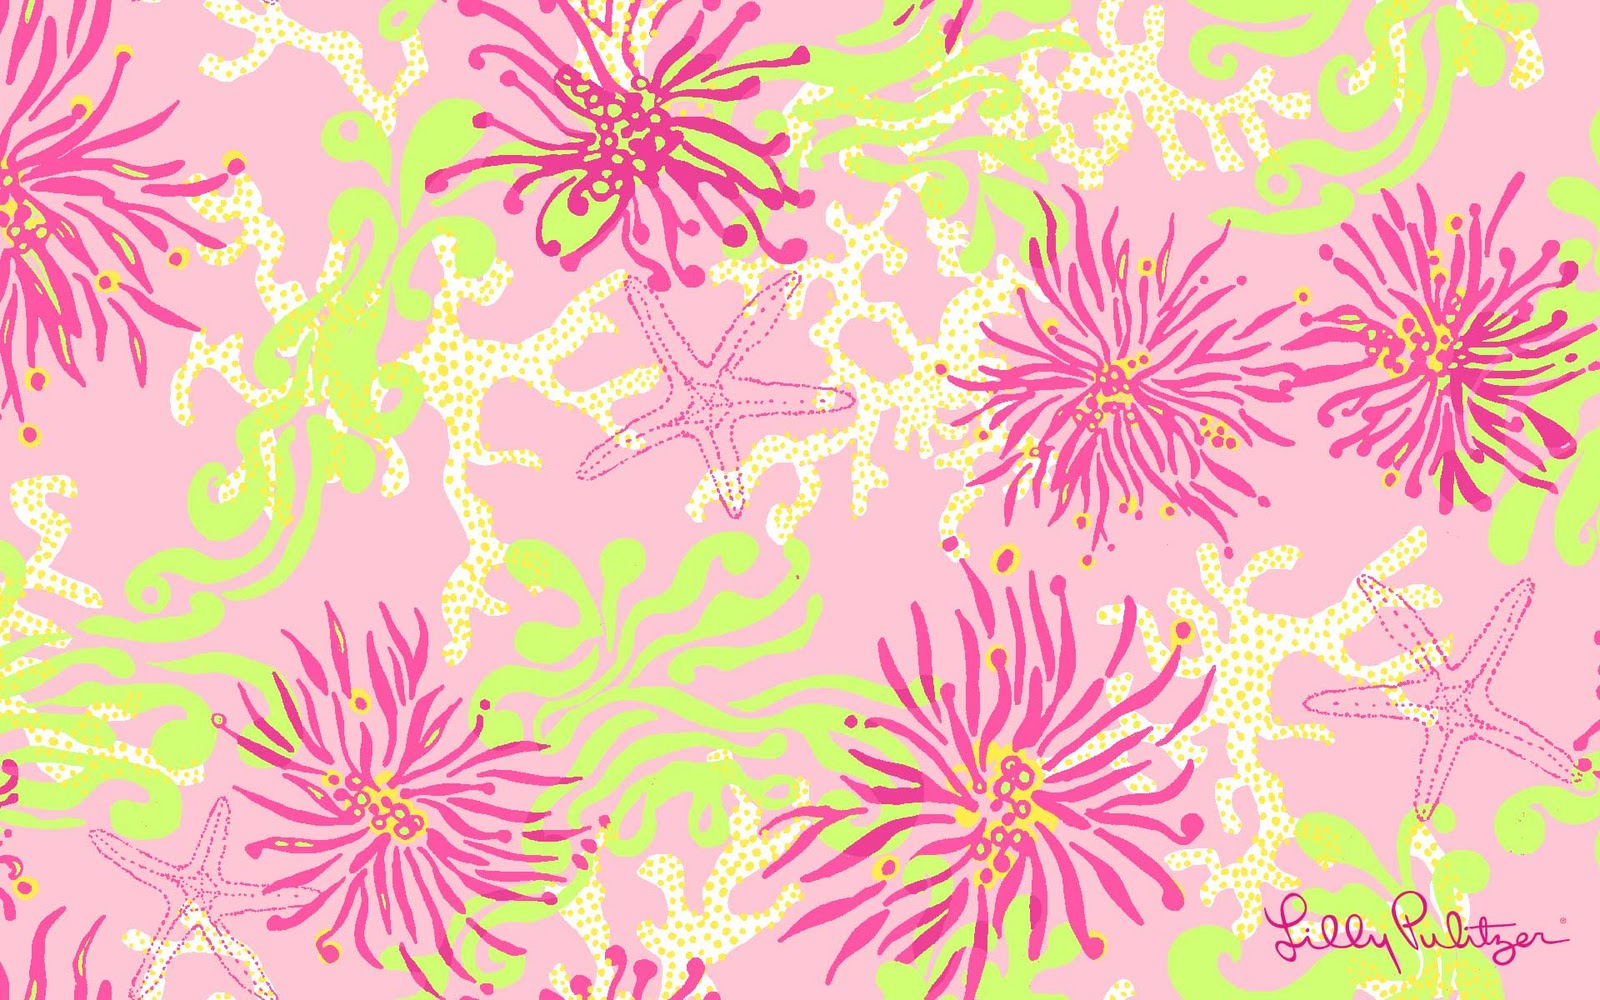 CanadianPrep: Lilly Desktop Wallpaper